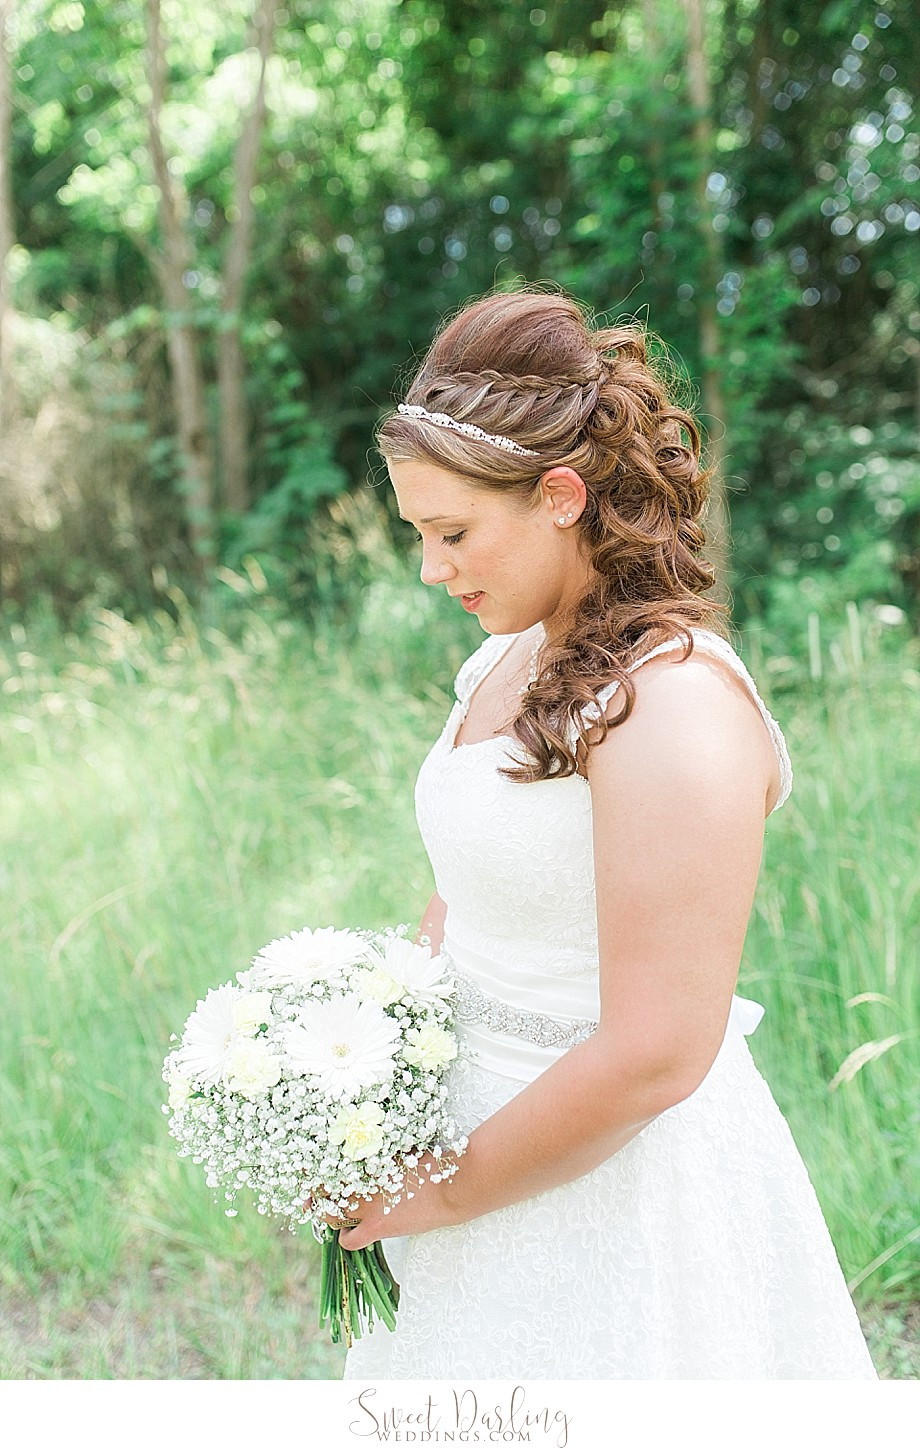 Wedding hair style for the bride braid and curls